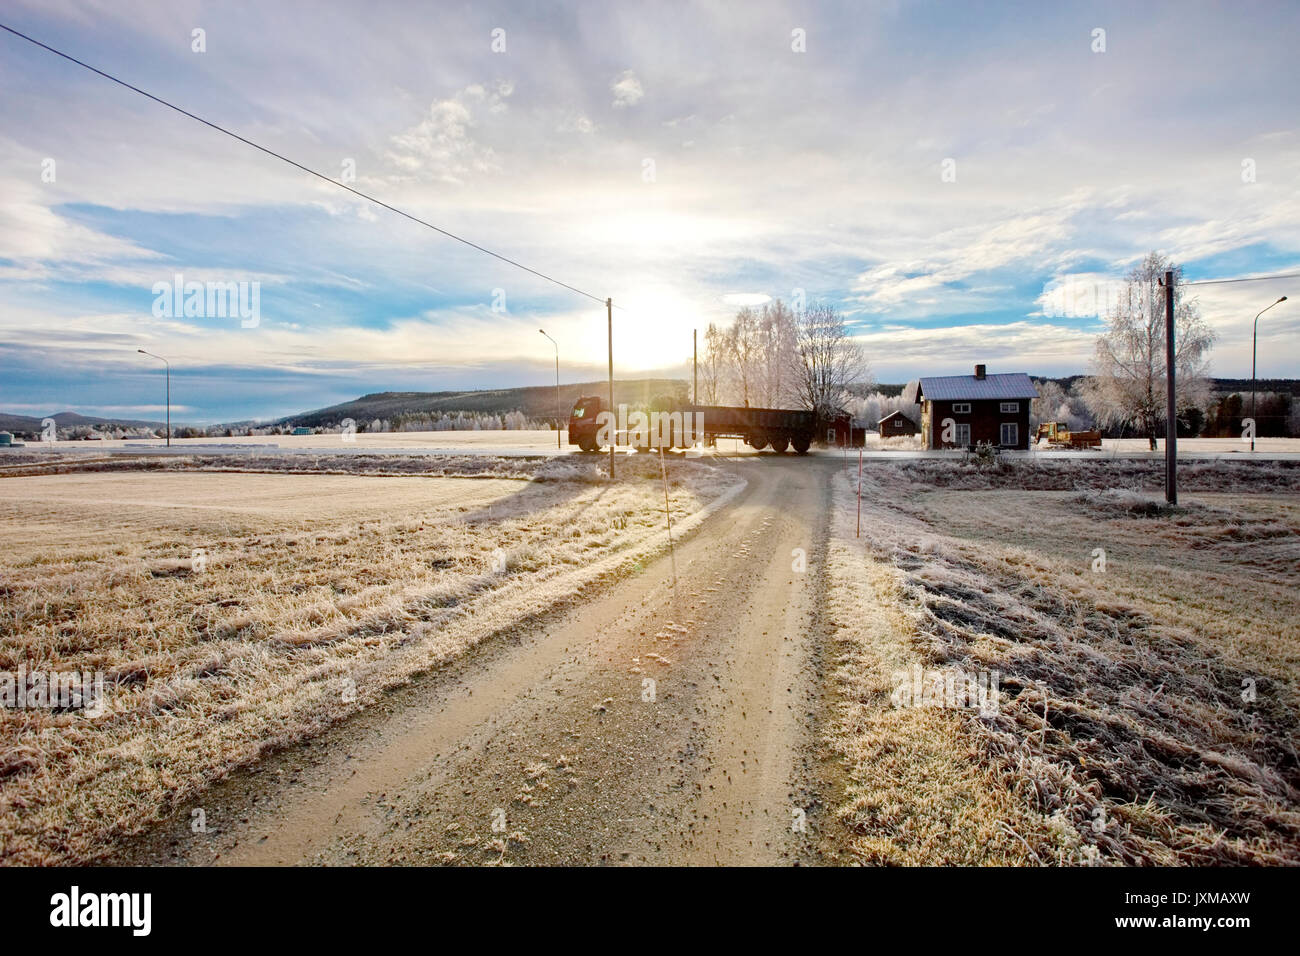 Truck driving on a country road past a wooden house on a frosty autumn morning in Sweden. - Stock Image